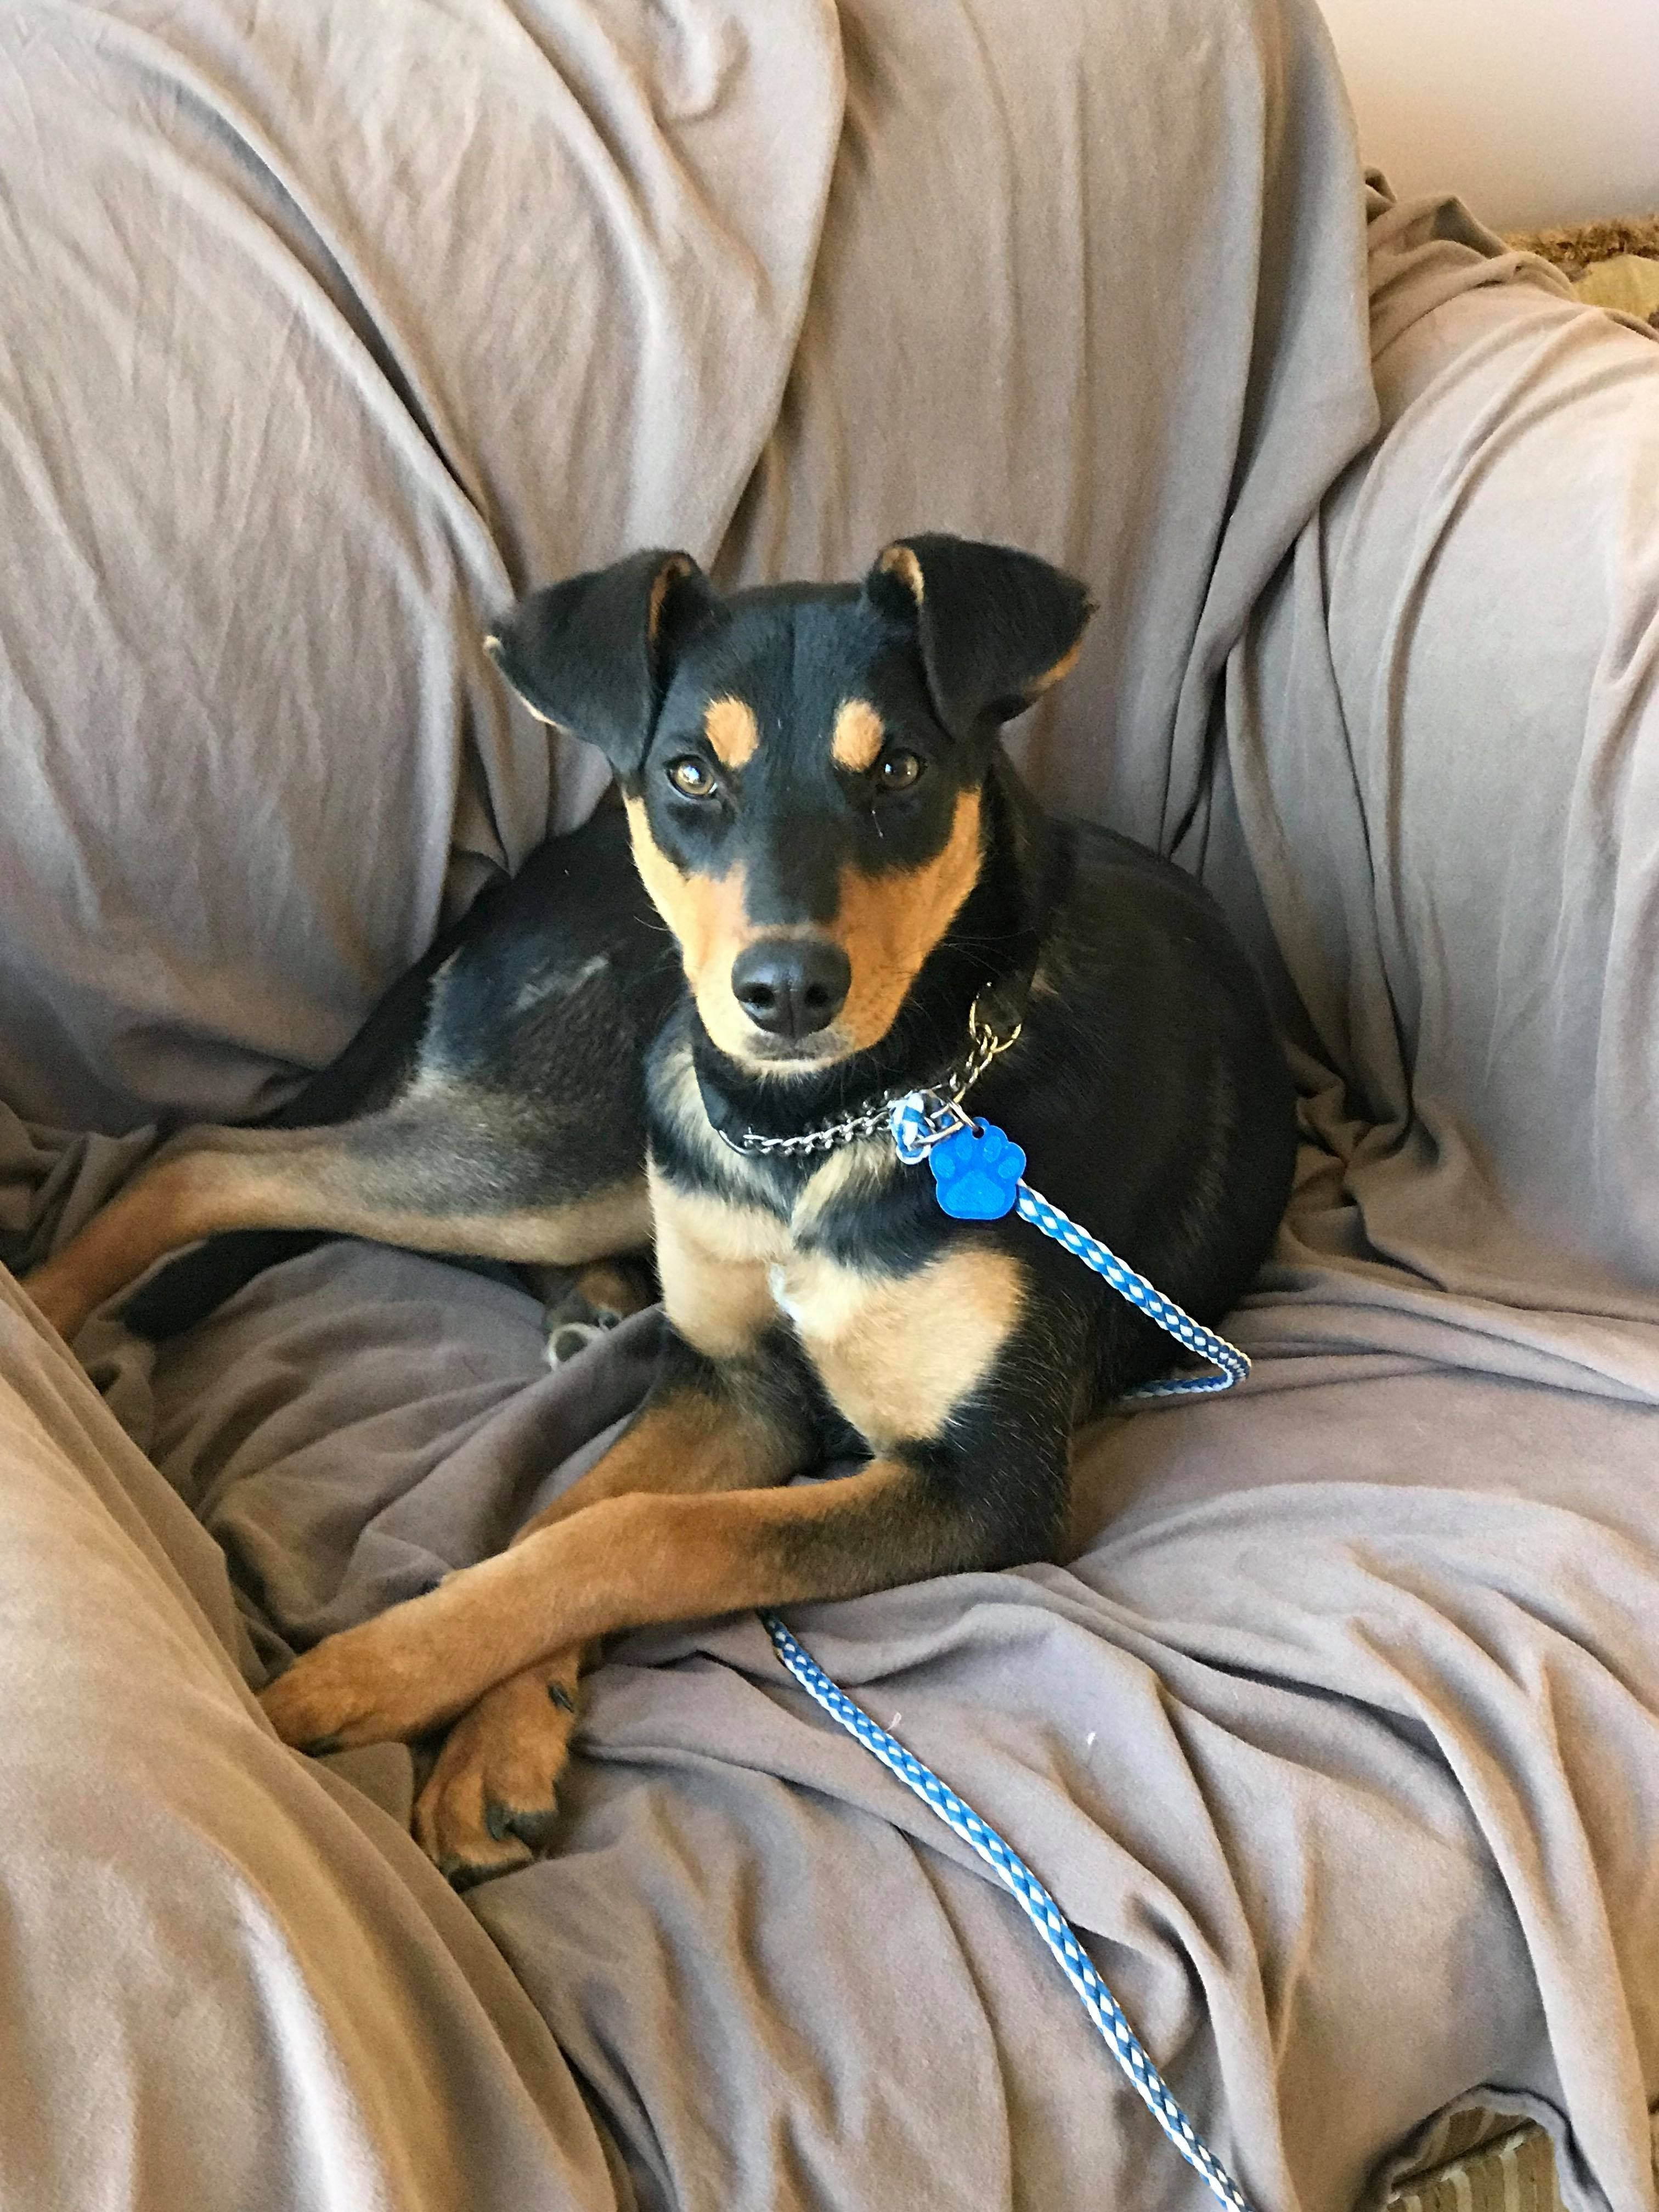 Libby Is An Adoptable Doberman Pinscher Searching For A Forever